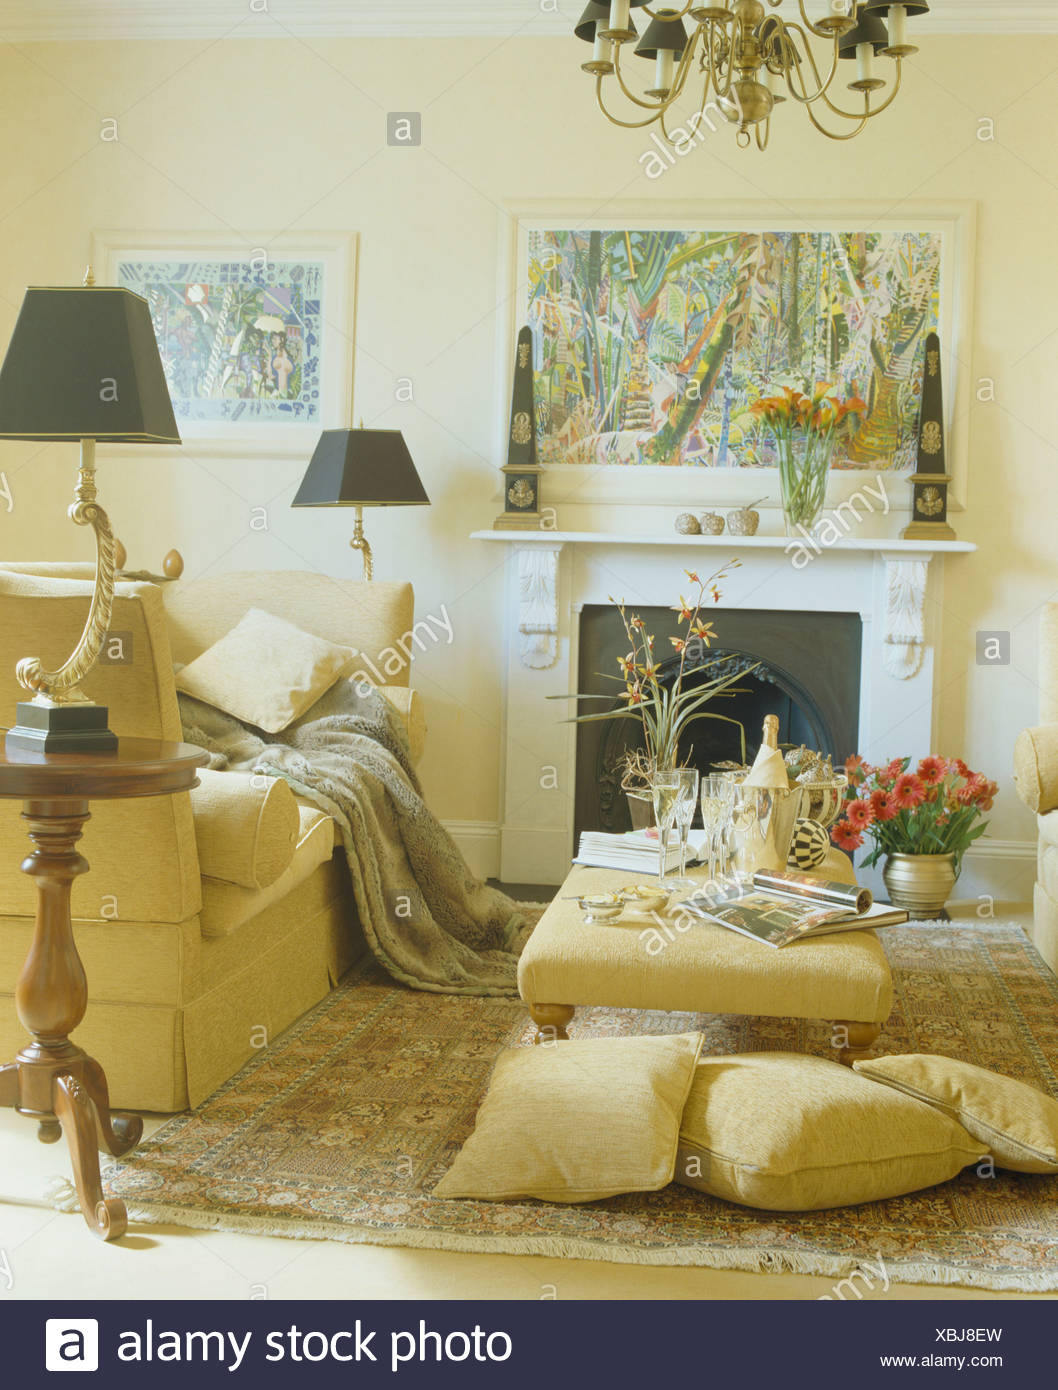 Pale Yellow Cushions On Floors Beside Upholstered Stool In Living Room With  Pale Yellow Sofas And Black Lamp On Tripod Table